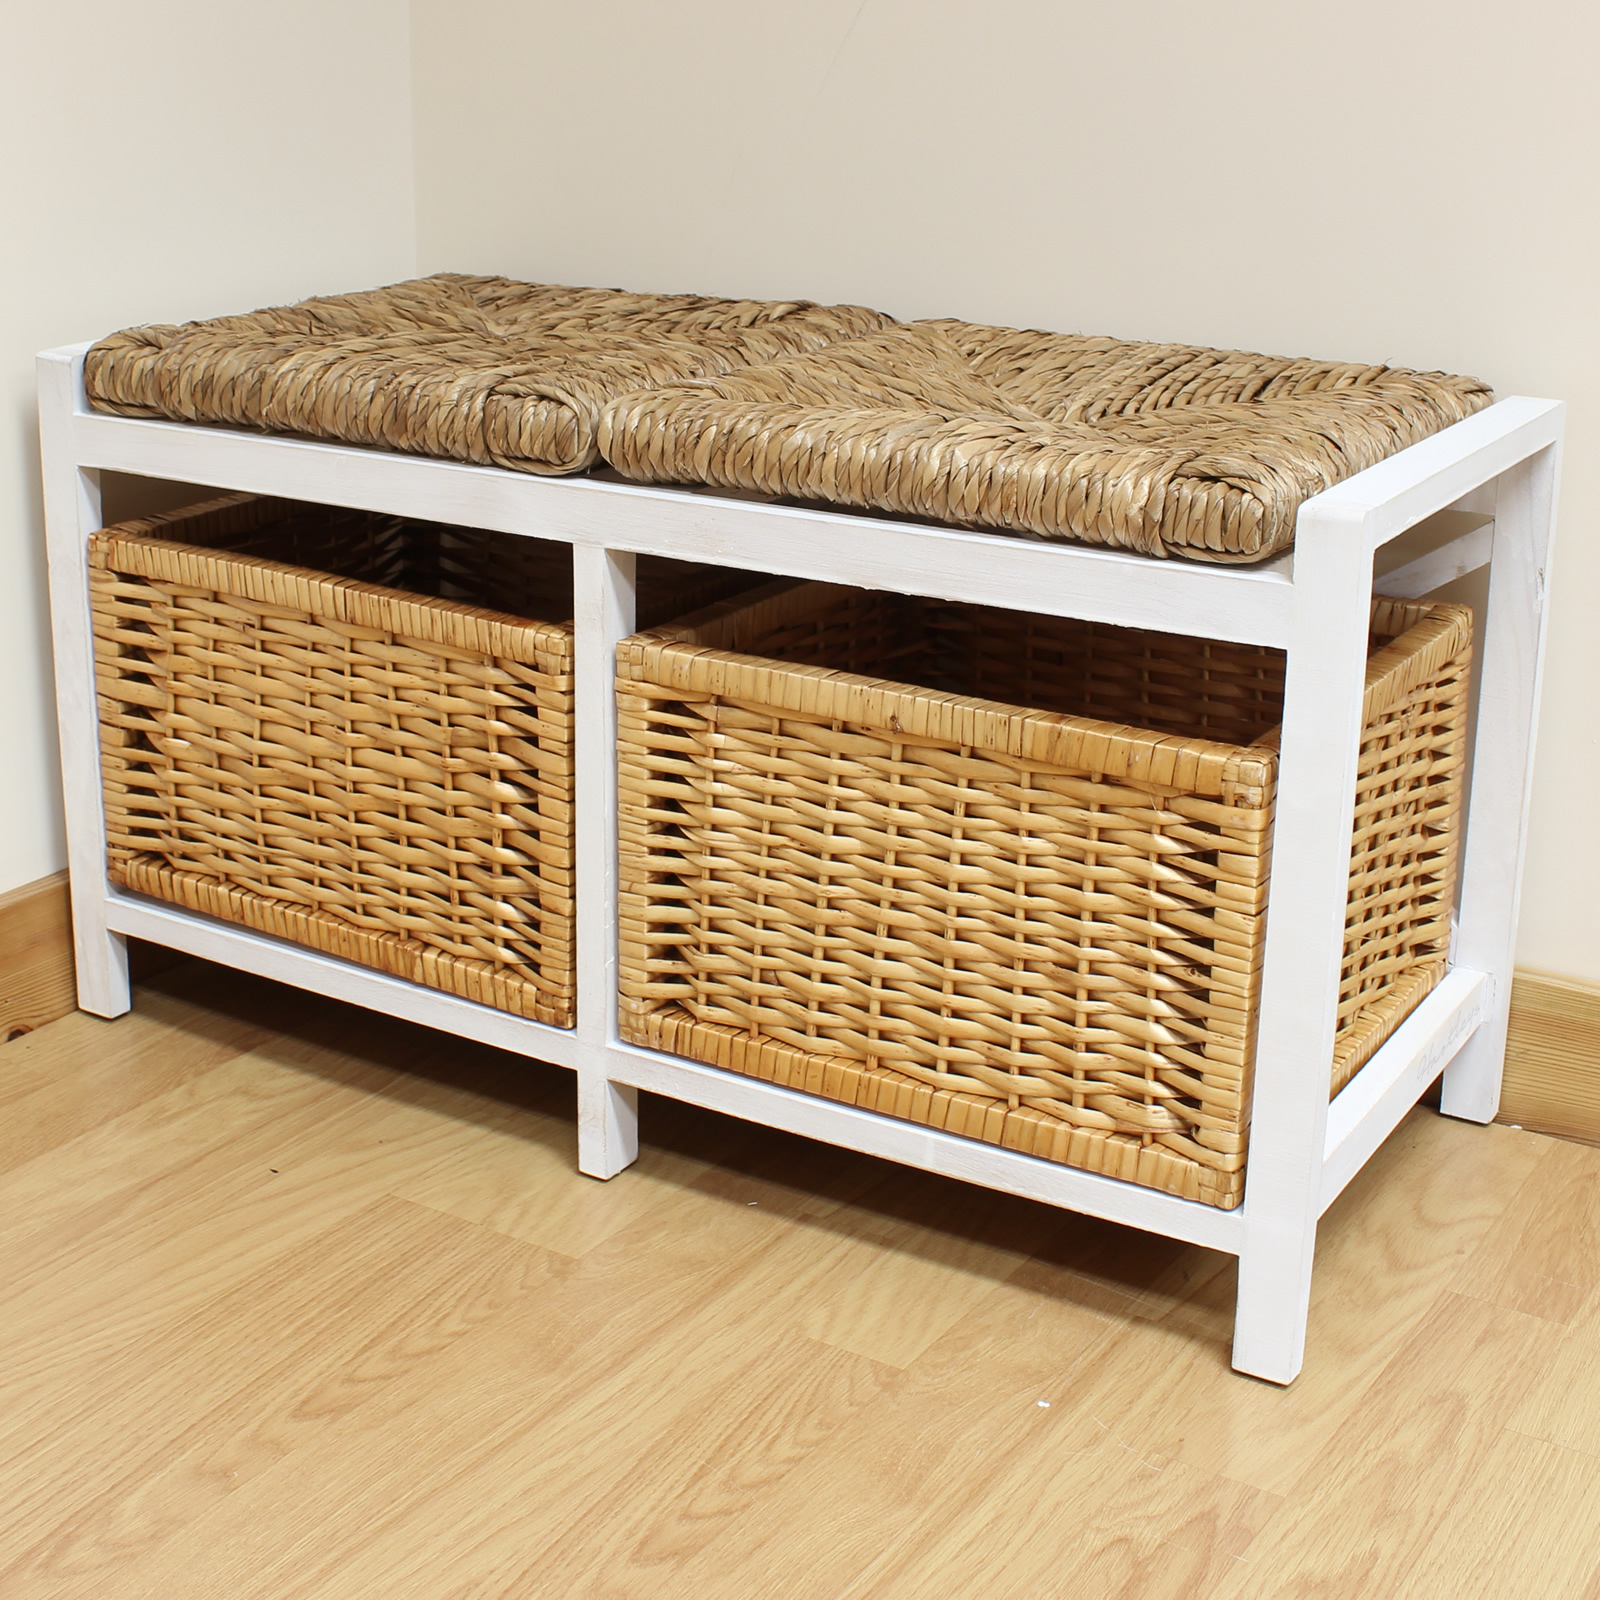 Hartleys Farmhouse Wicker Cushion Bench Seat Storage Baskets Hallway Bathroom Ebay